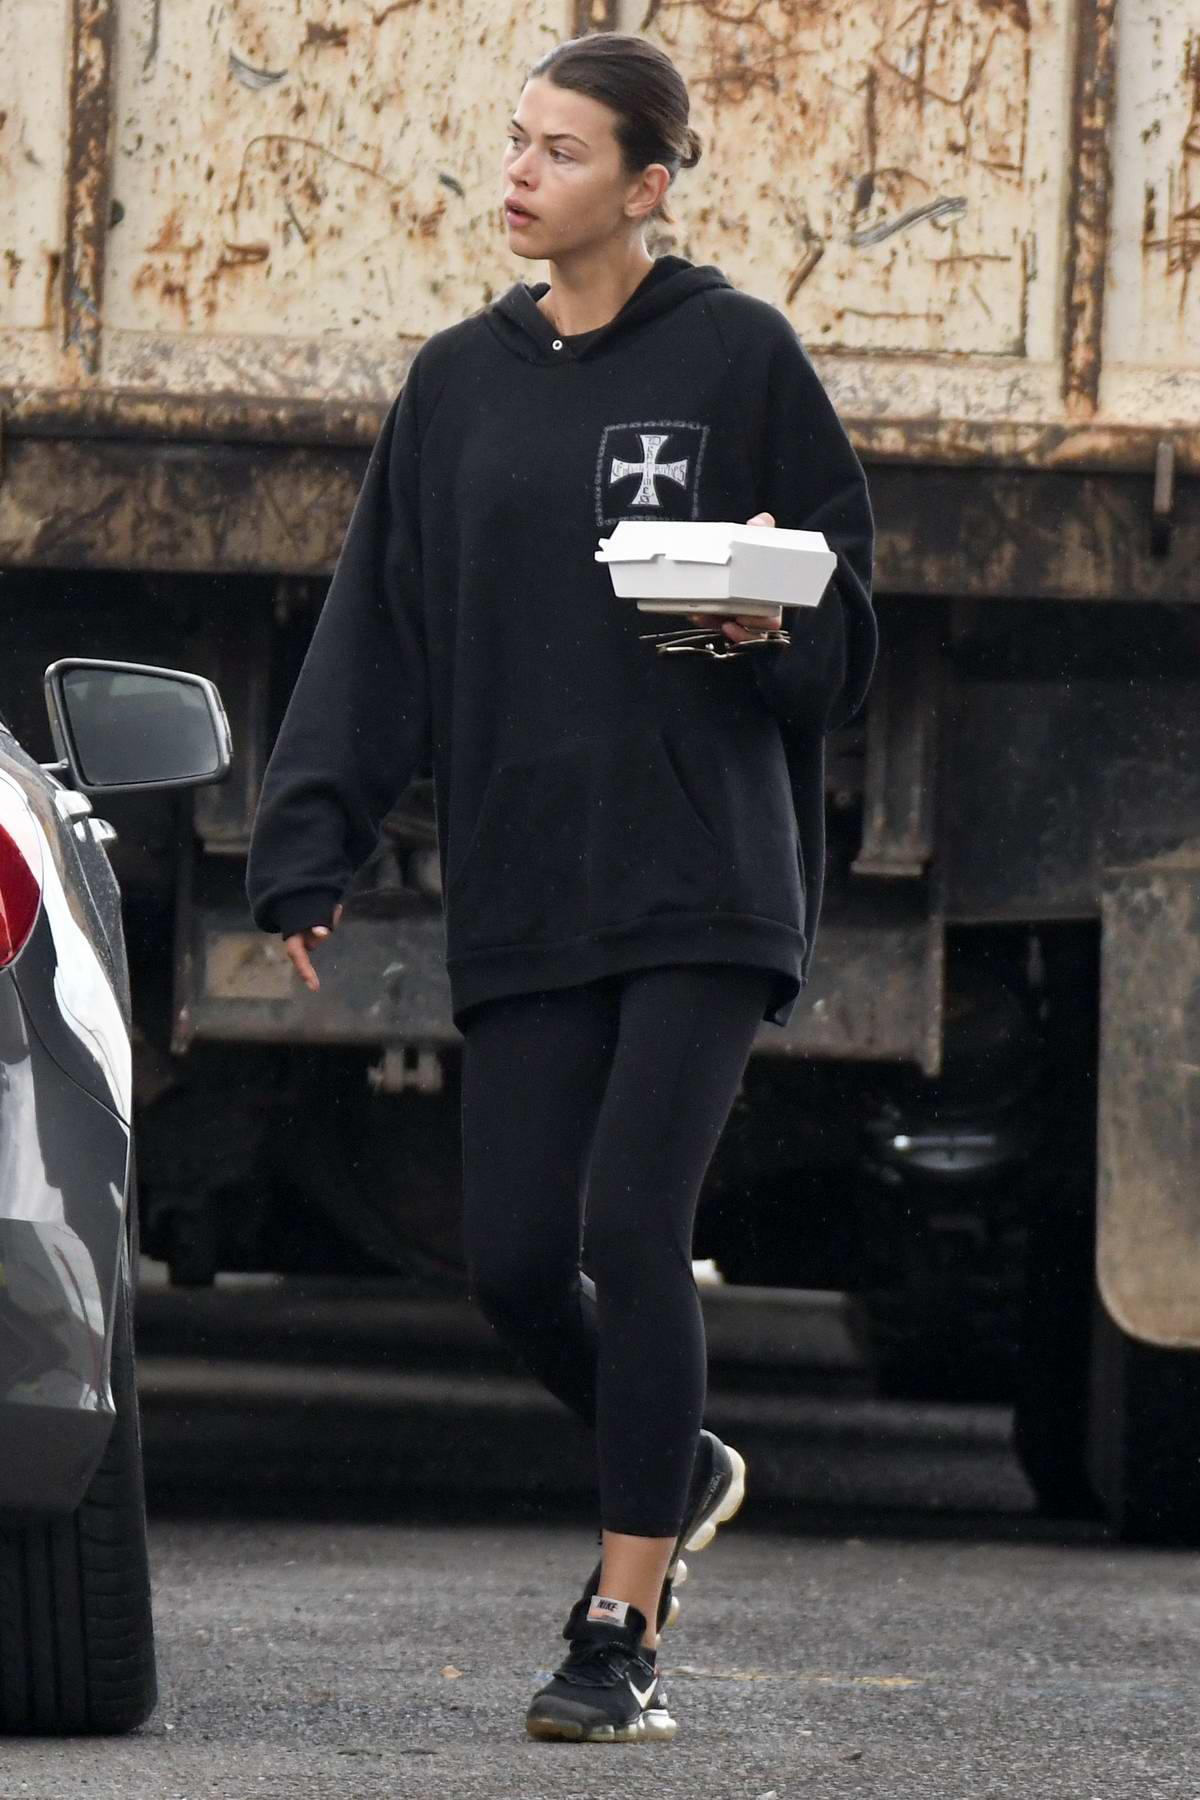 Georgia Fowler sports a black hoodie and leggings as she grab some food in Sydney, Australia